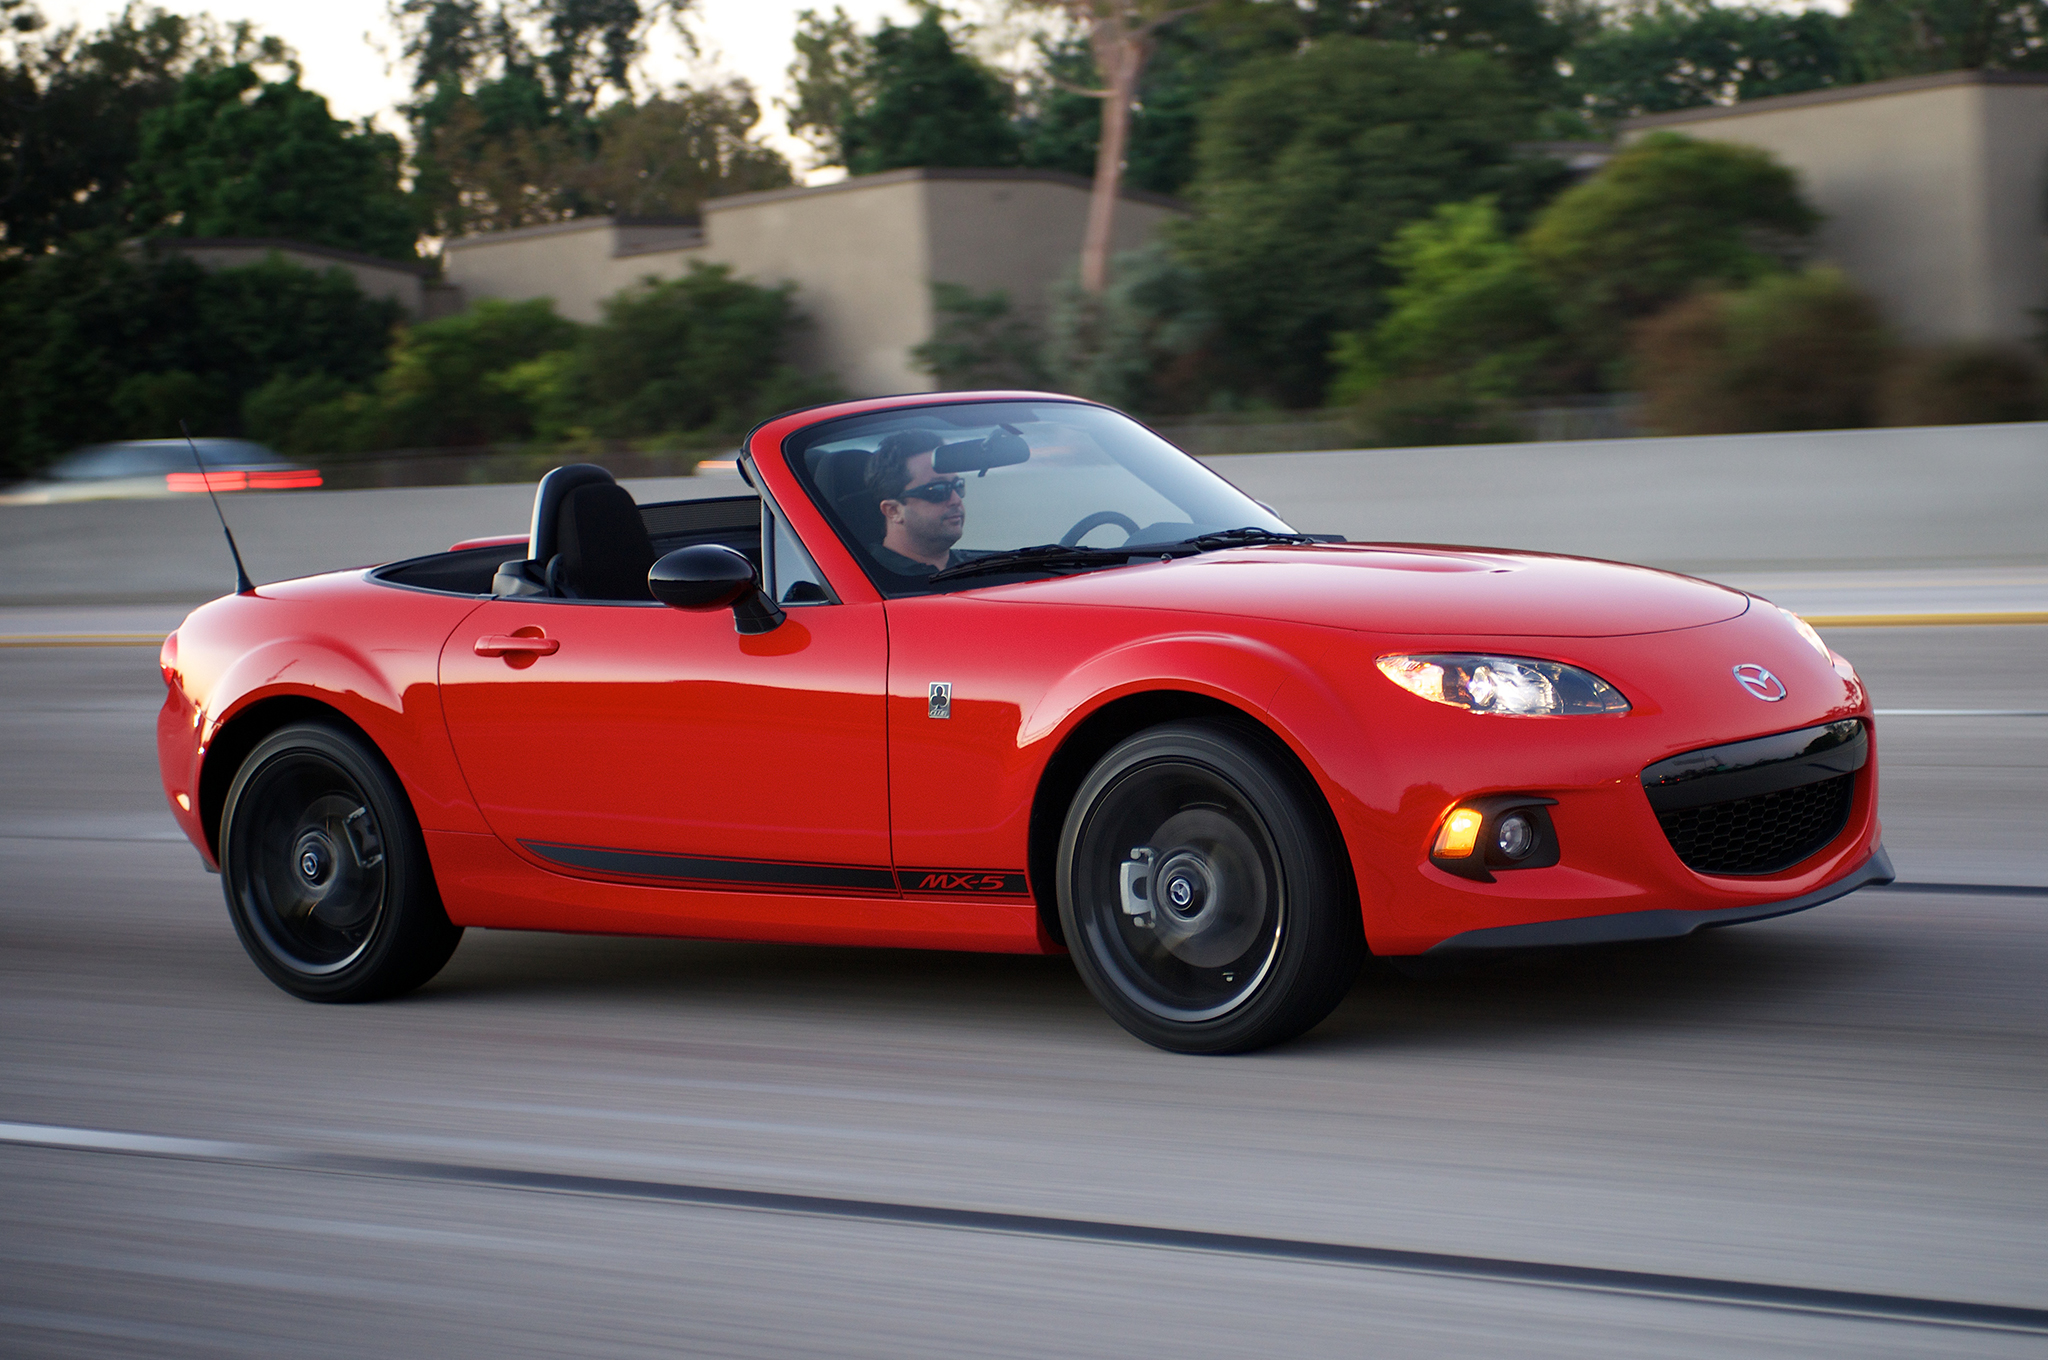 2015 Mazda MX-5 Miata Selling in Low Numbers